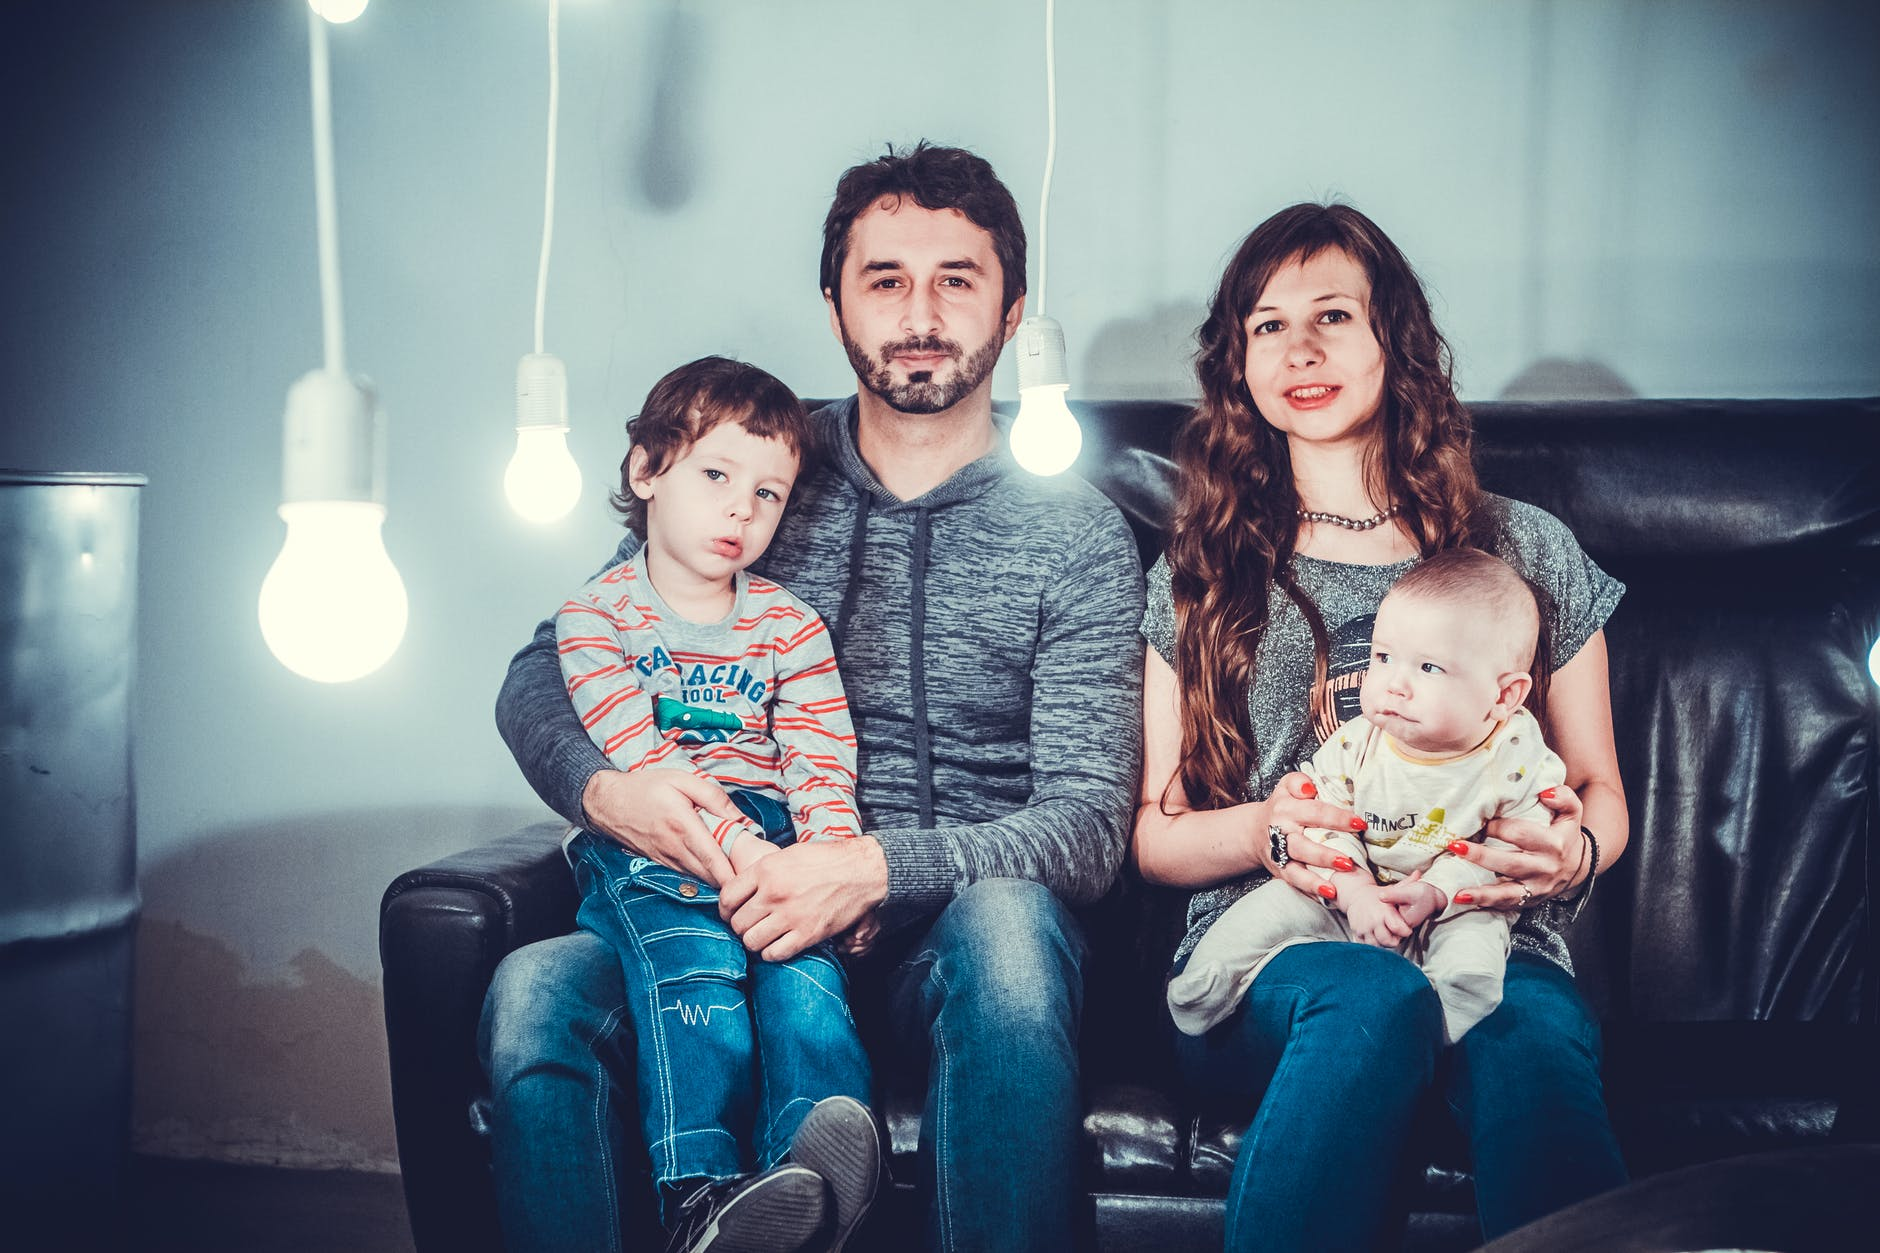 We were delighted with our new family.   Source: Pexels